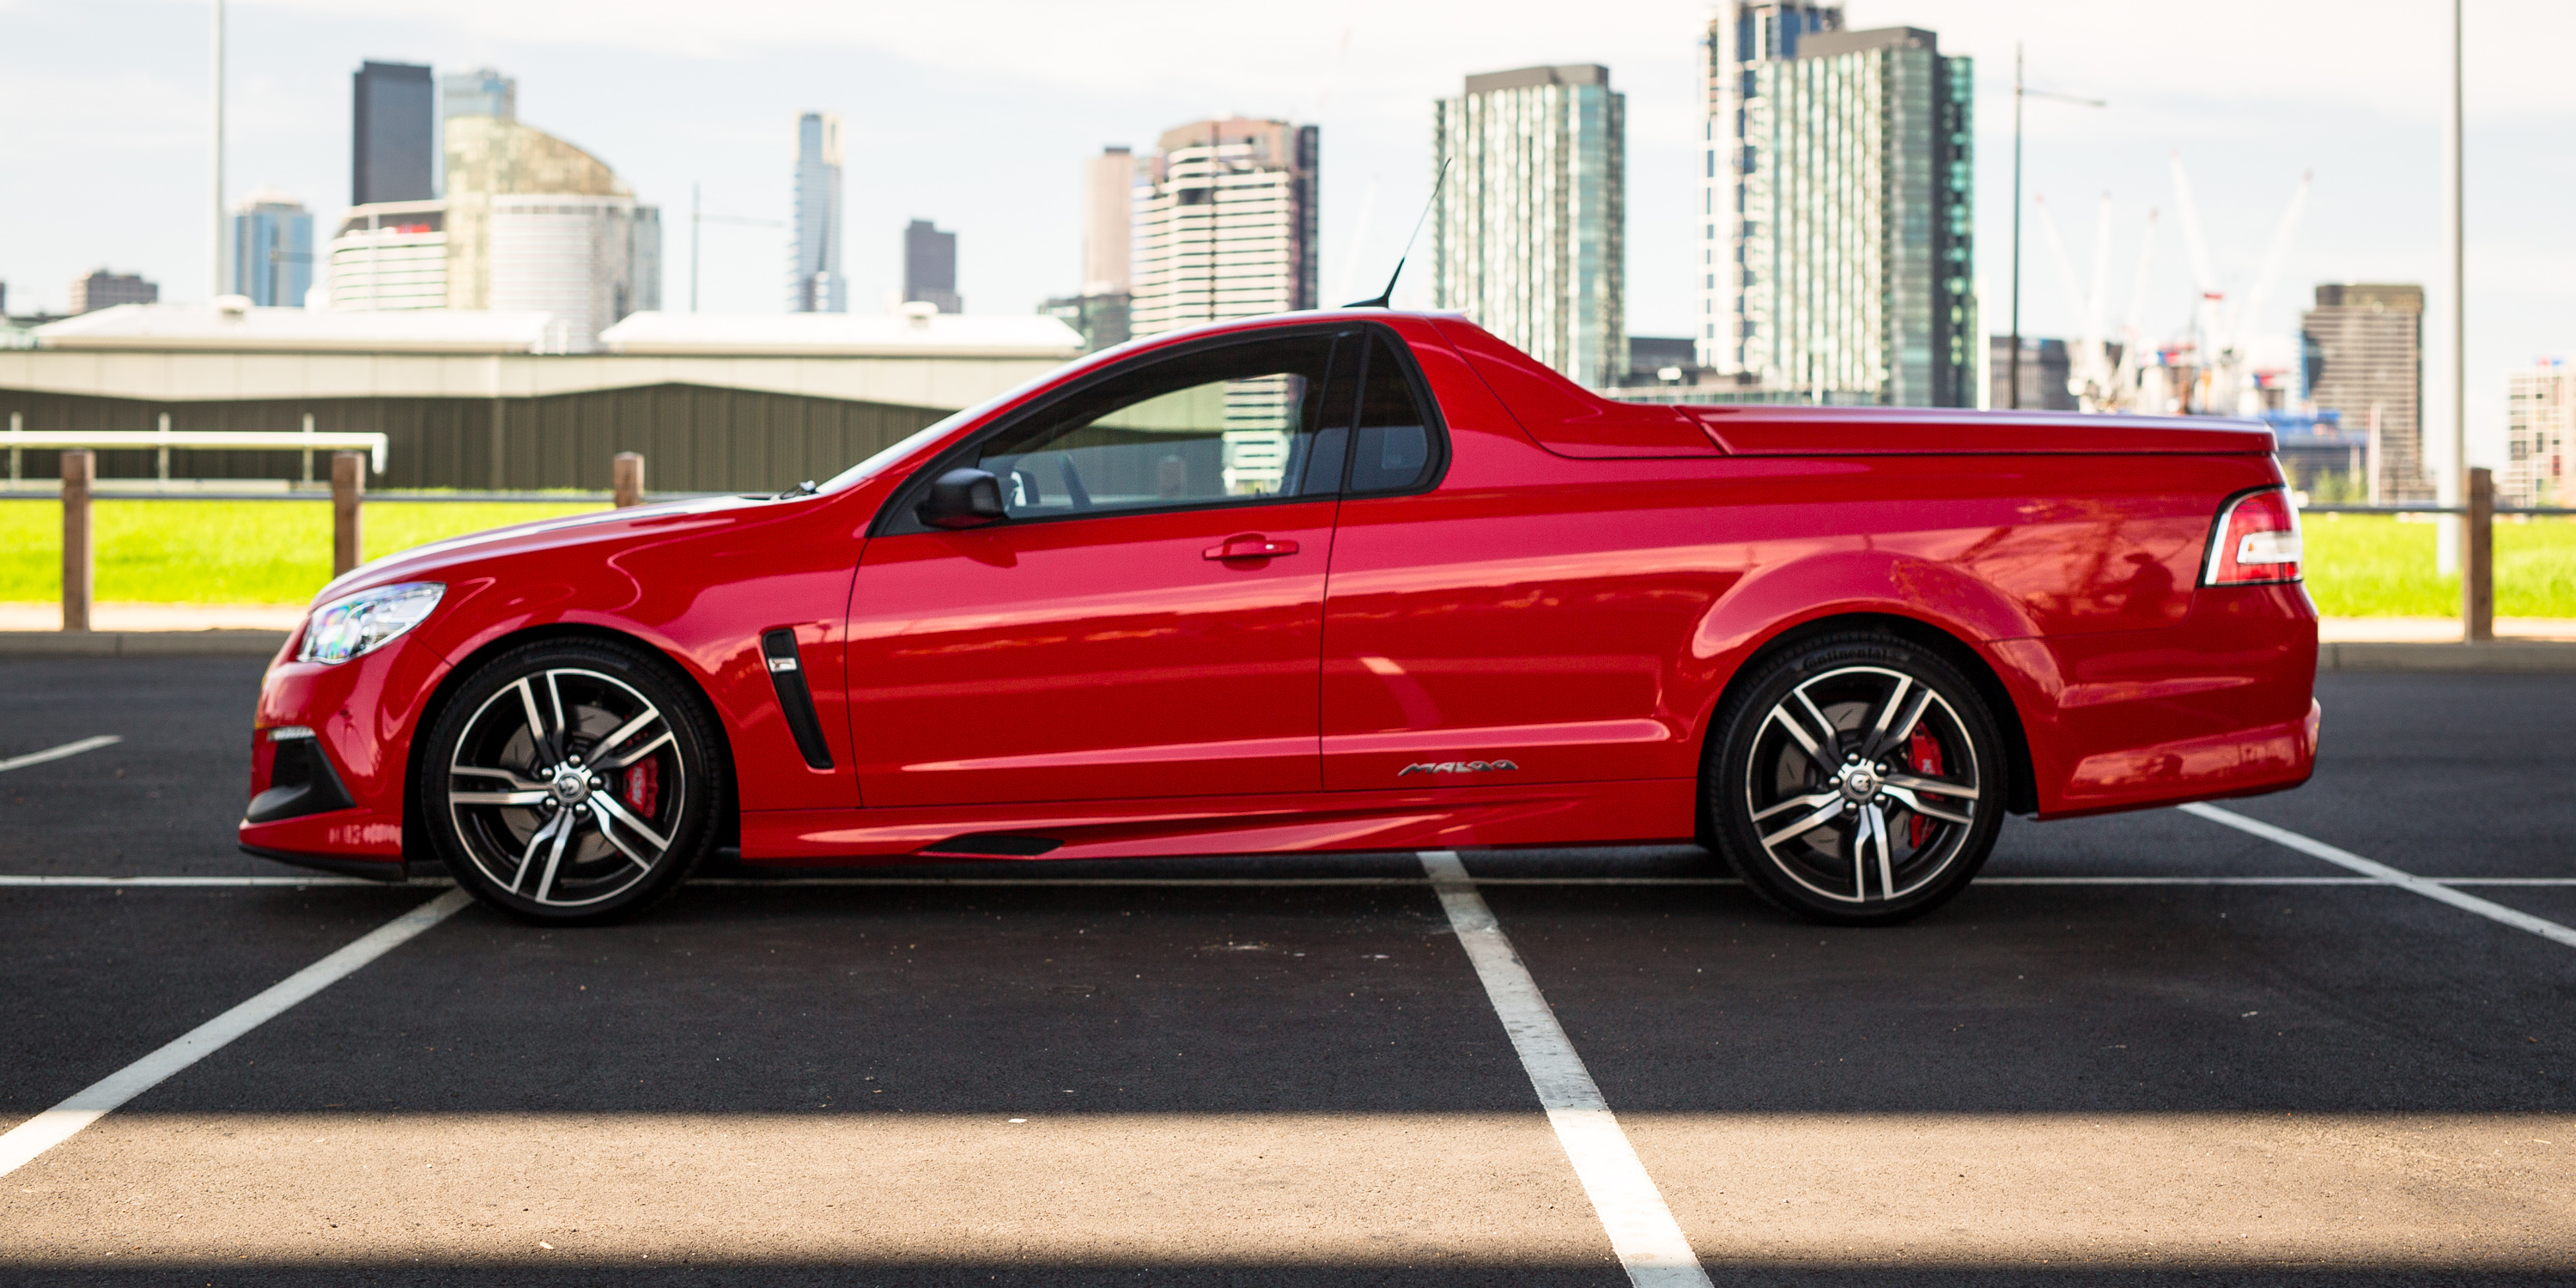 2016 Hsv maloo photo - 2